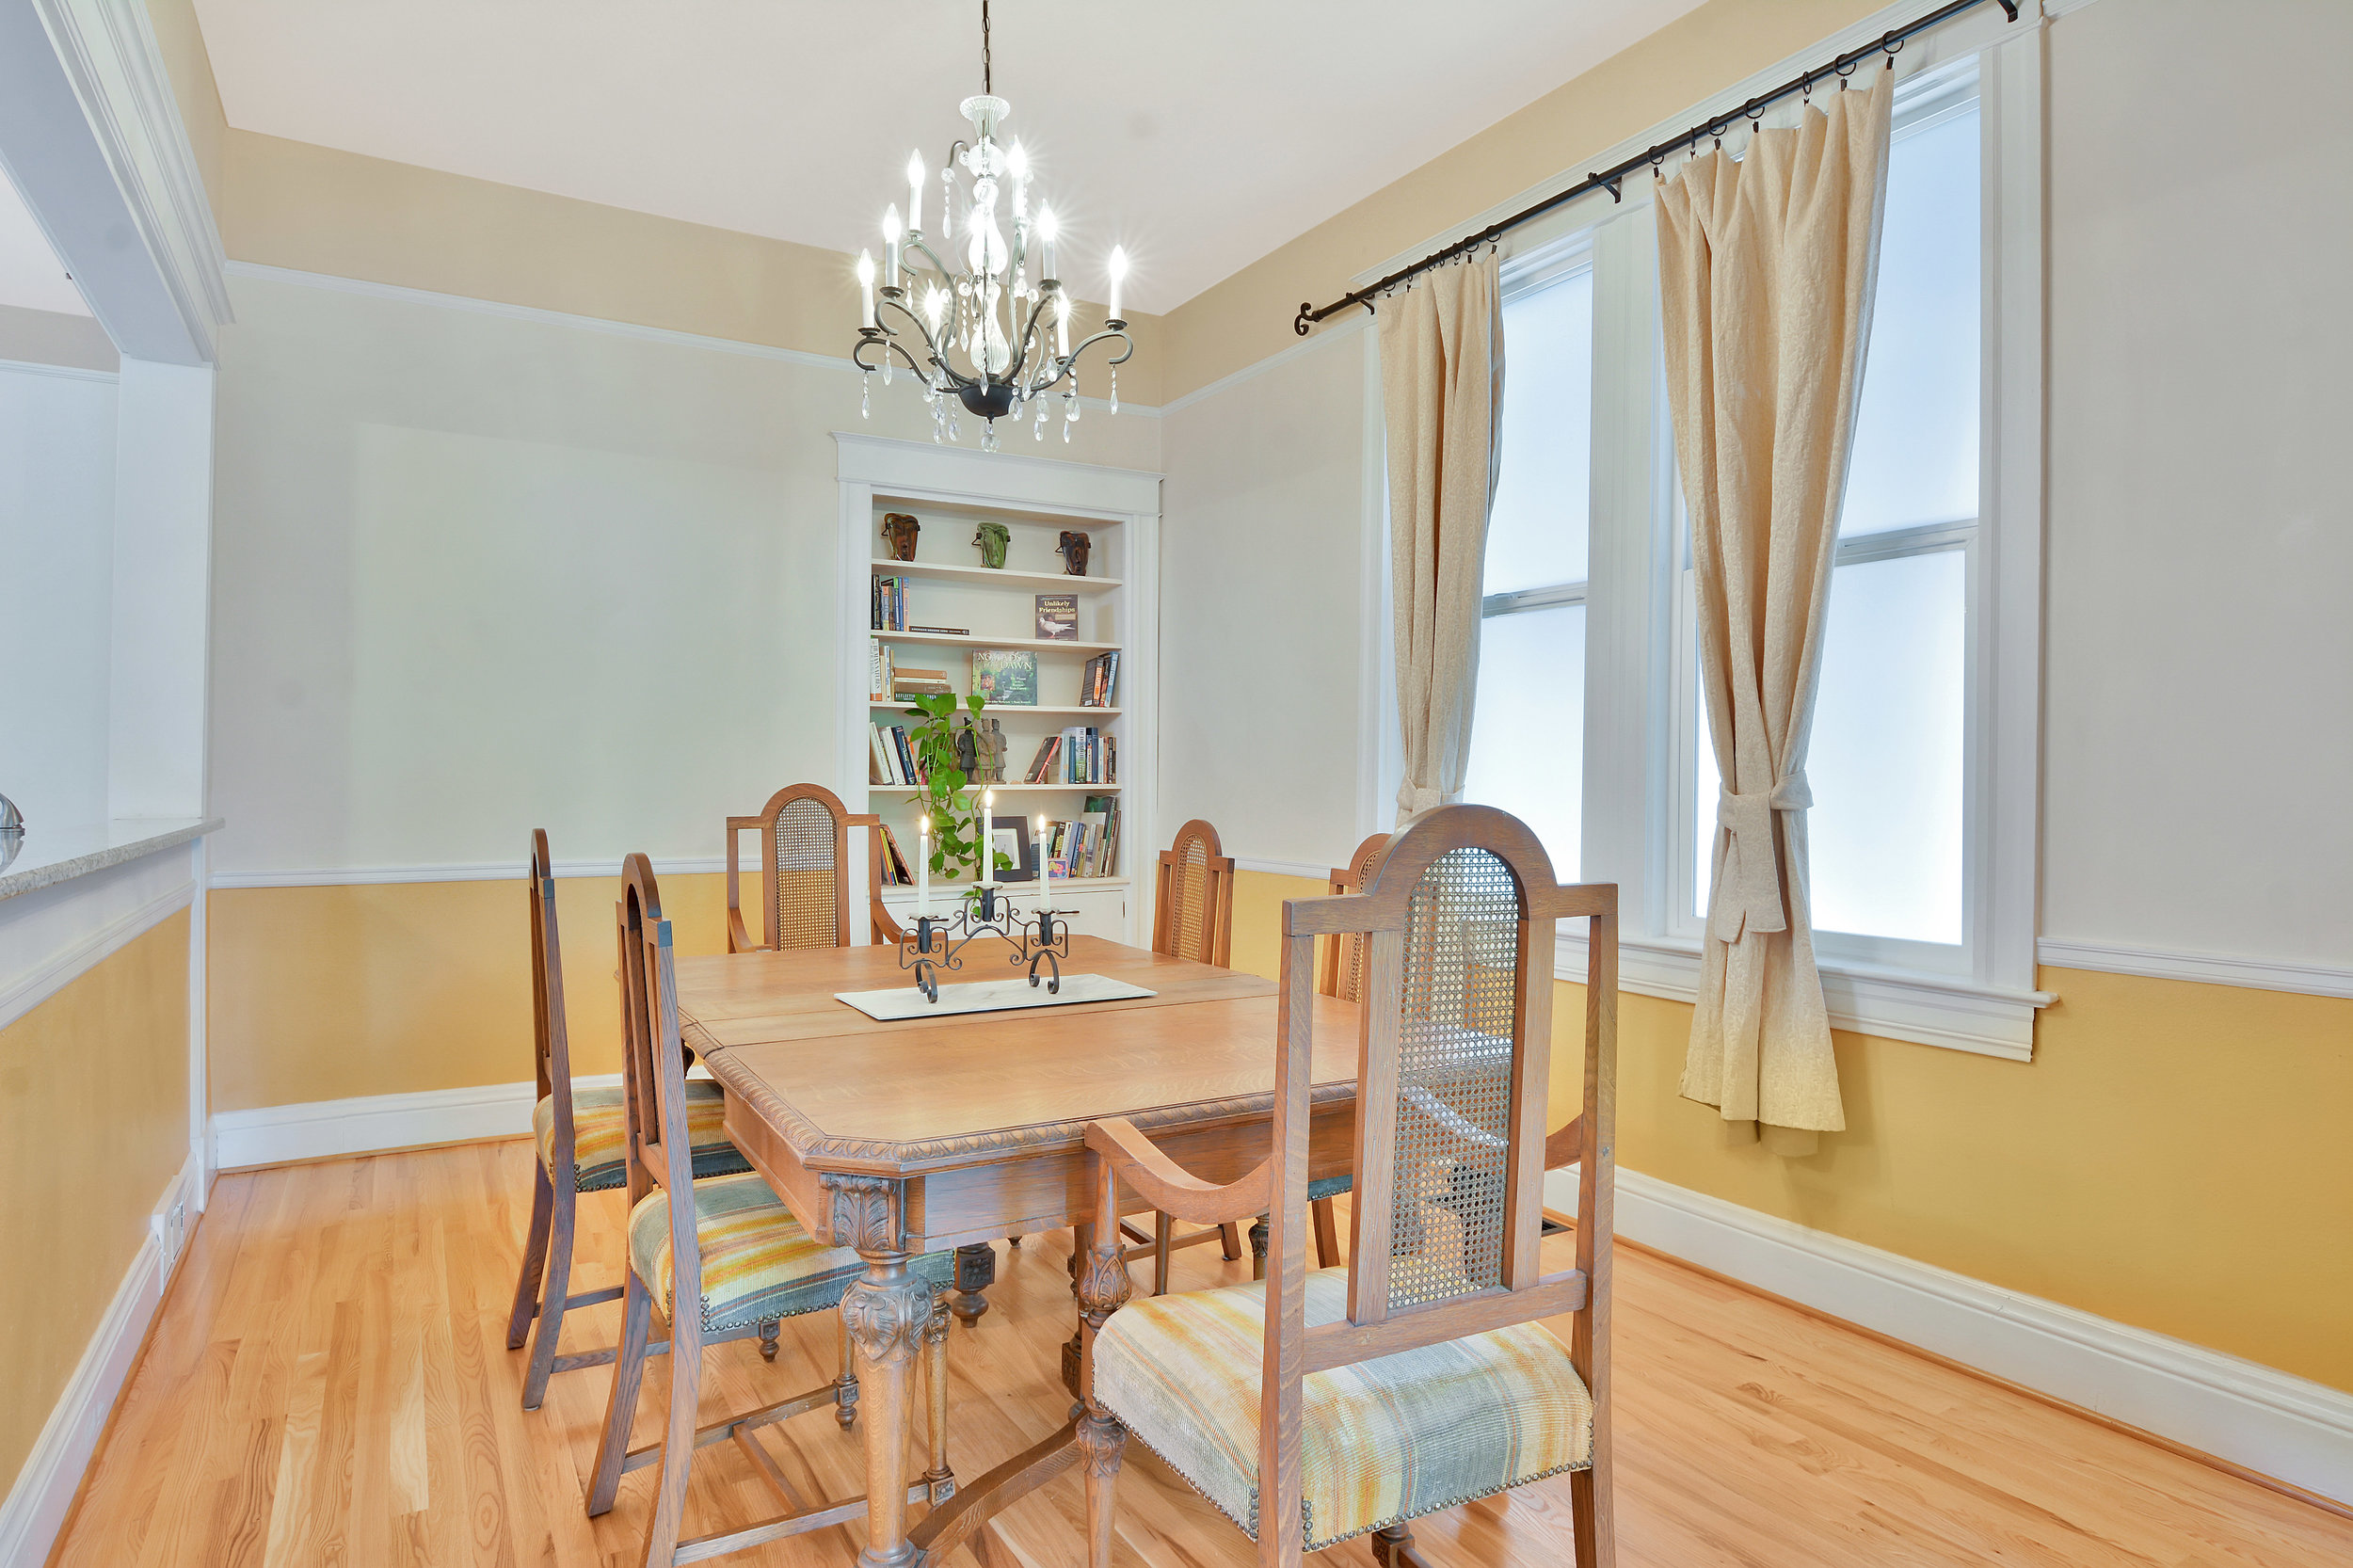 Dining room with built in shelving.